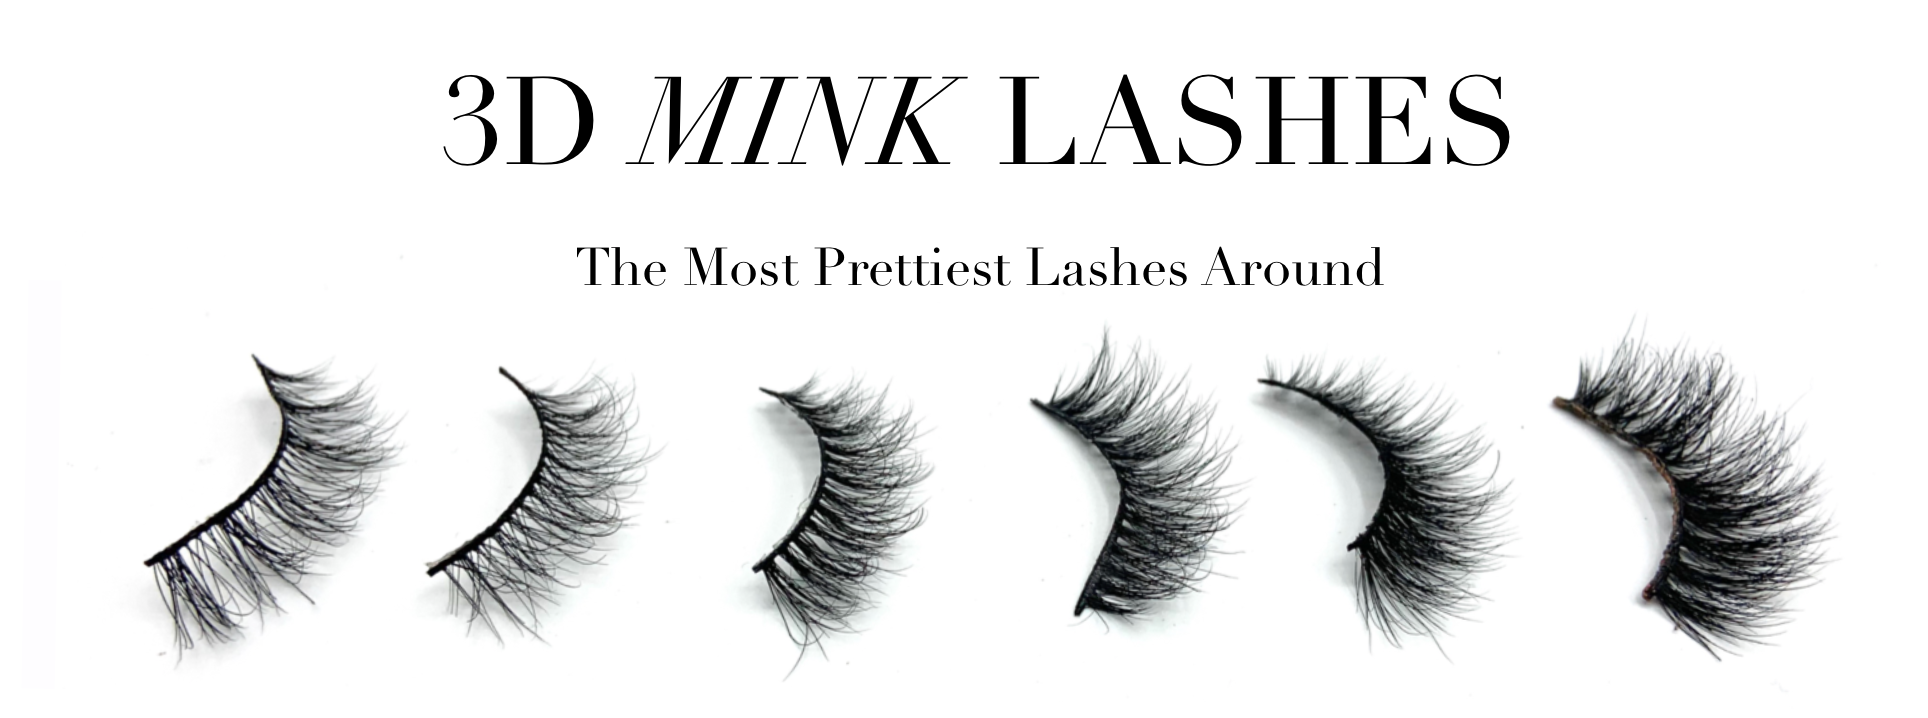 WHAT ARE 3D MINK LASHES– Minkk Lashes - Mink Lashes, Wispy Lashes